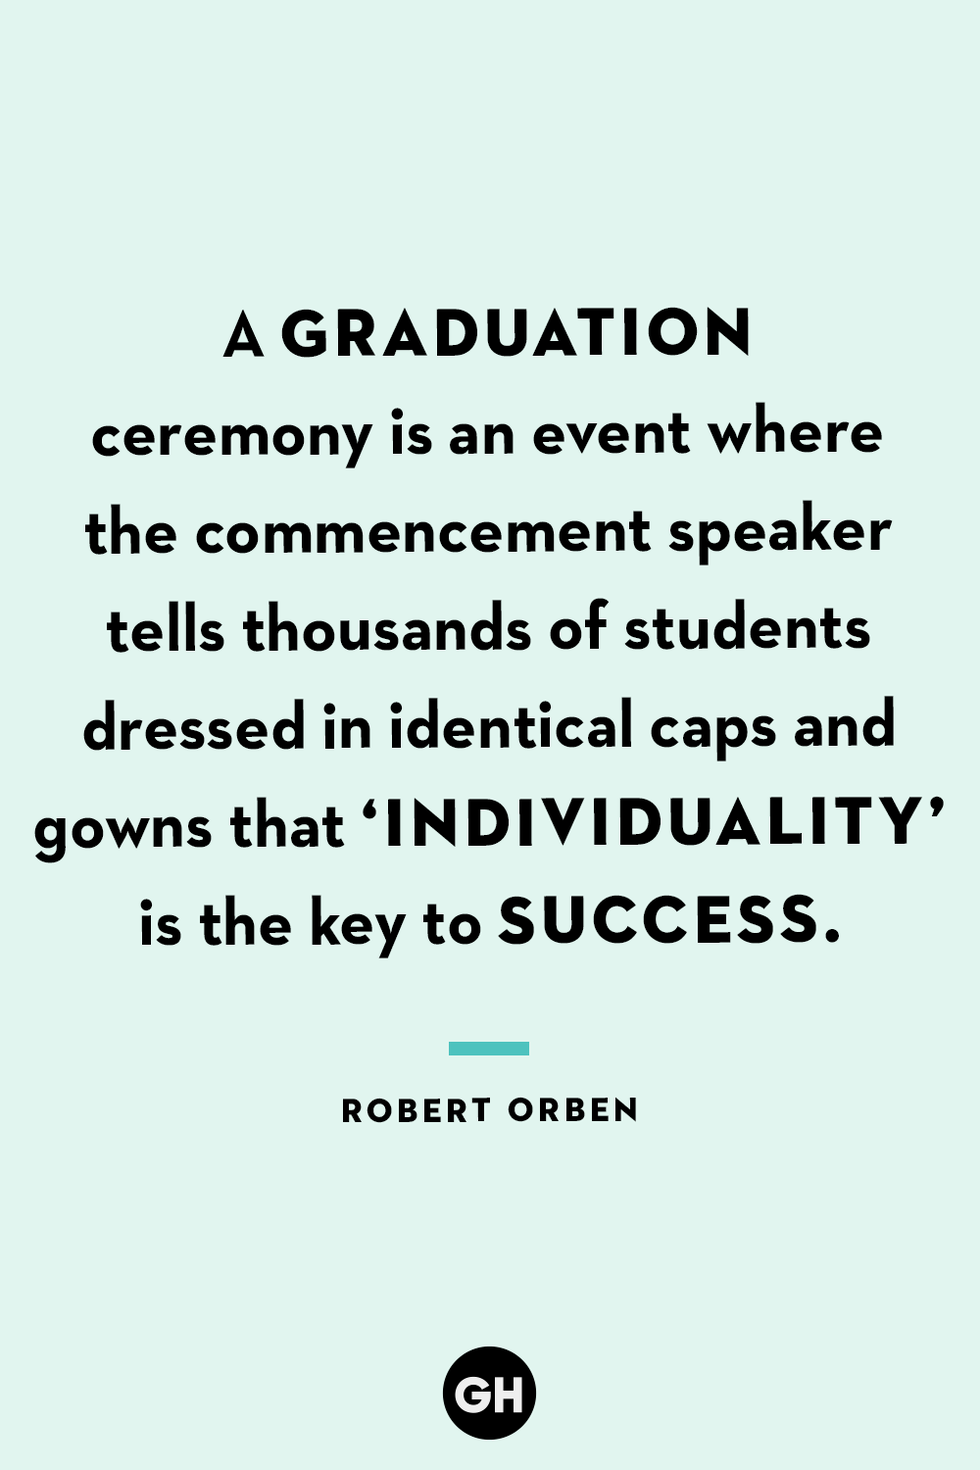 42 Funny Graduation Quotes That Are Way Too Accurate Graduation Quotes Funny Graduation Quotes Graduation Funny